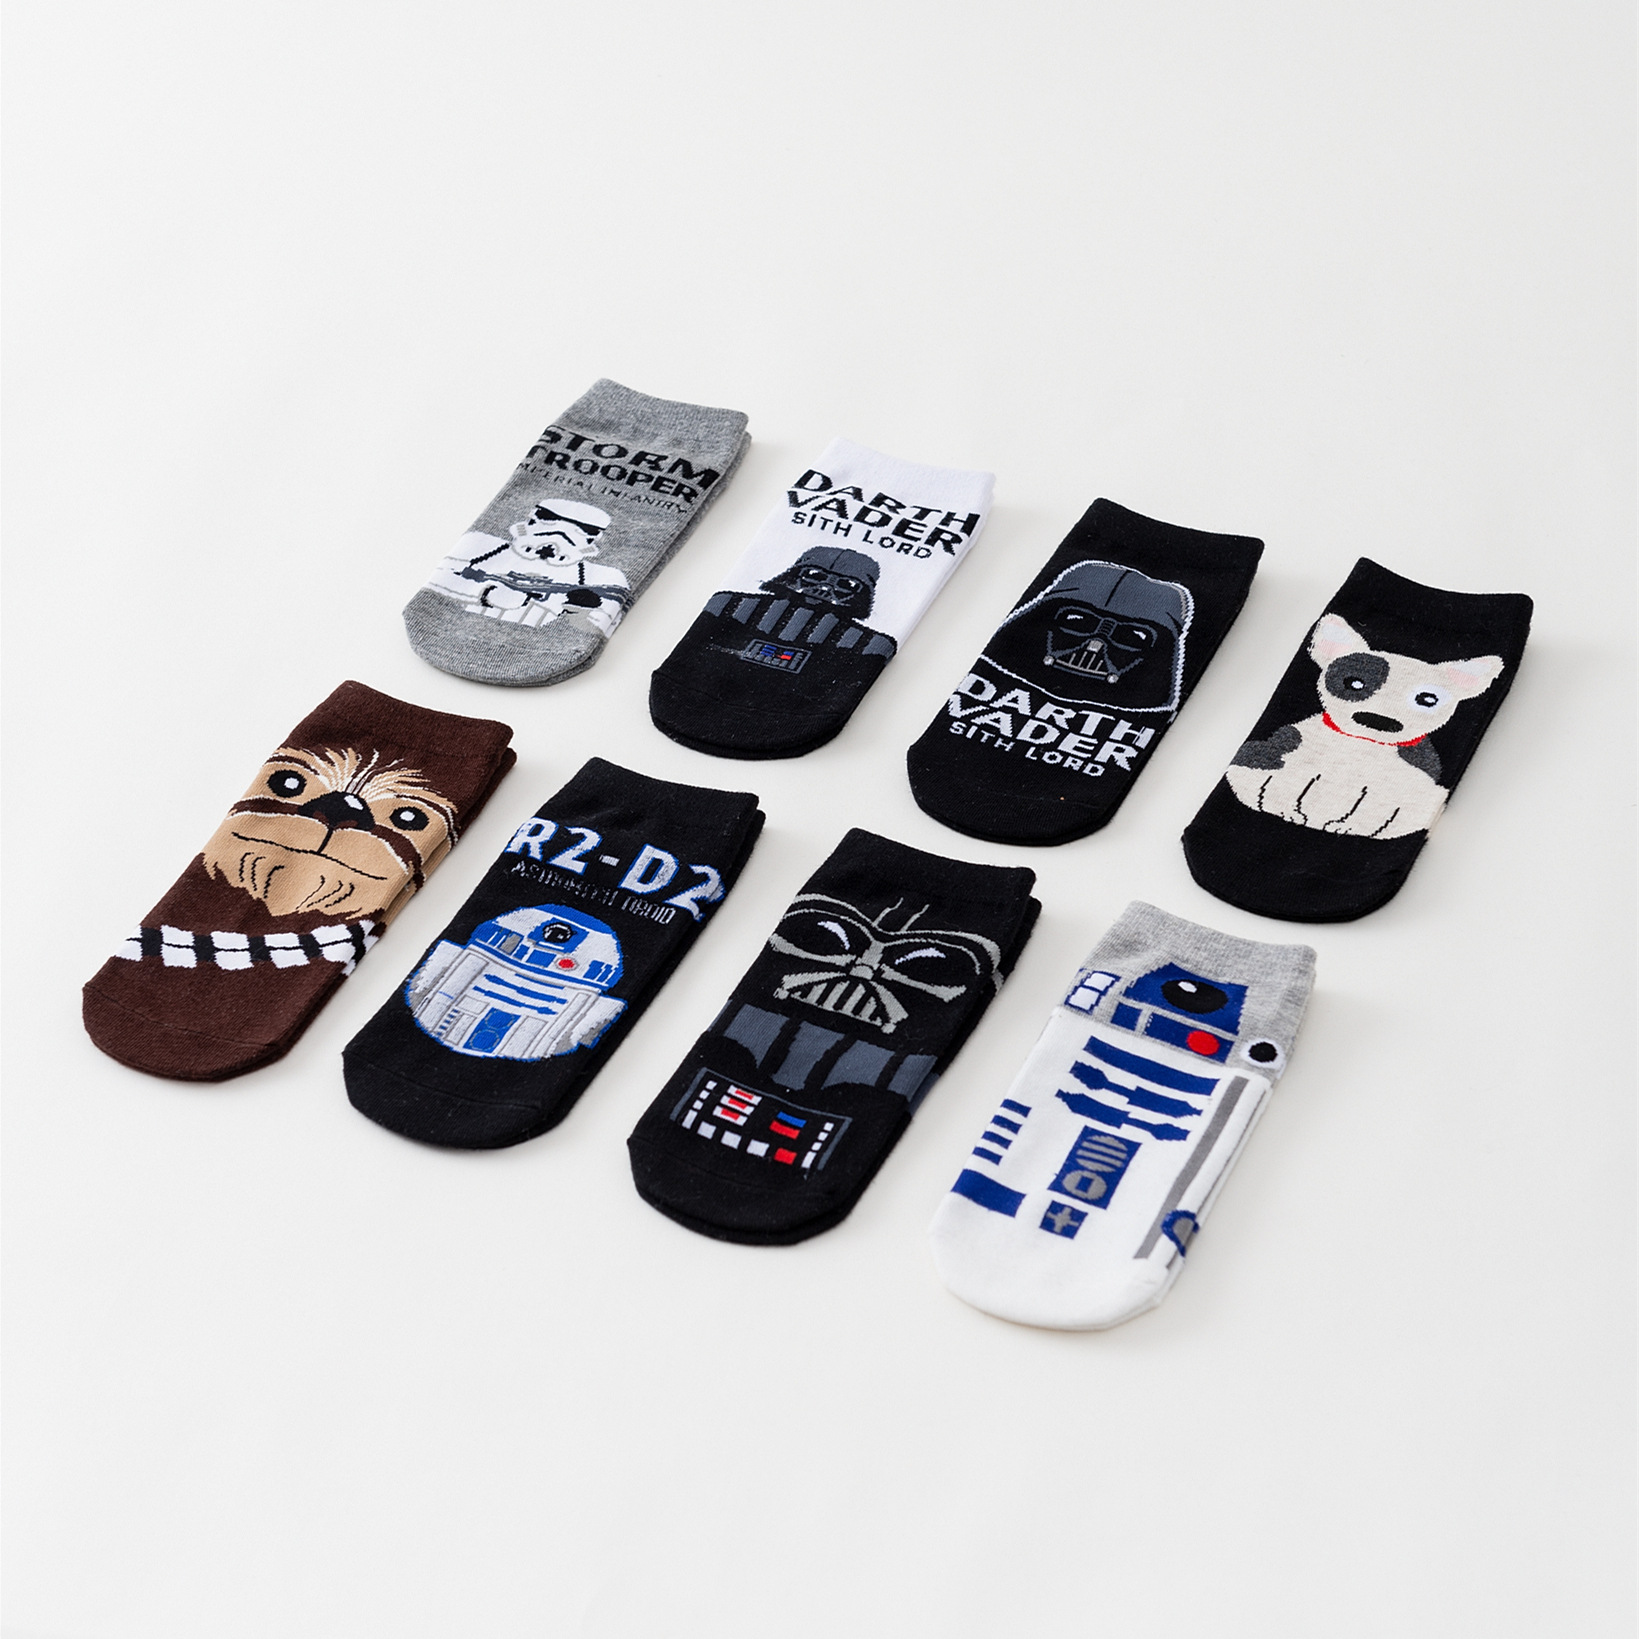 2019 Spring Summer High Quality Harajuku Chaussette Style Socks For Women Men's Cotton Hip Hop Socks Man Meias Mens Calcetines